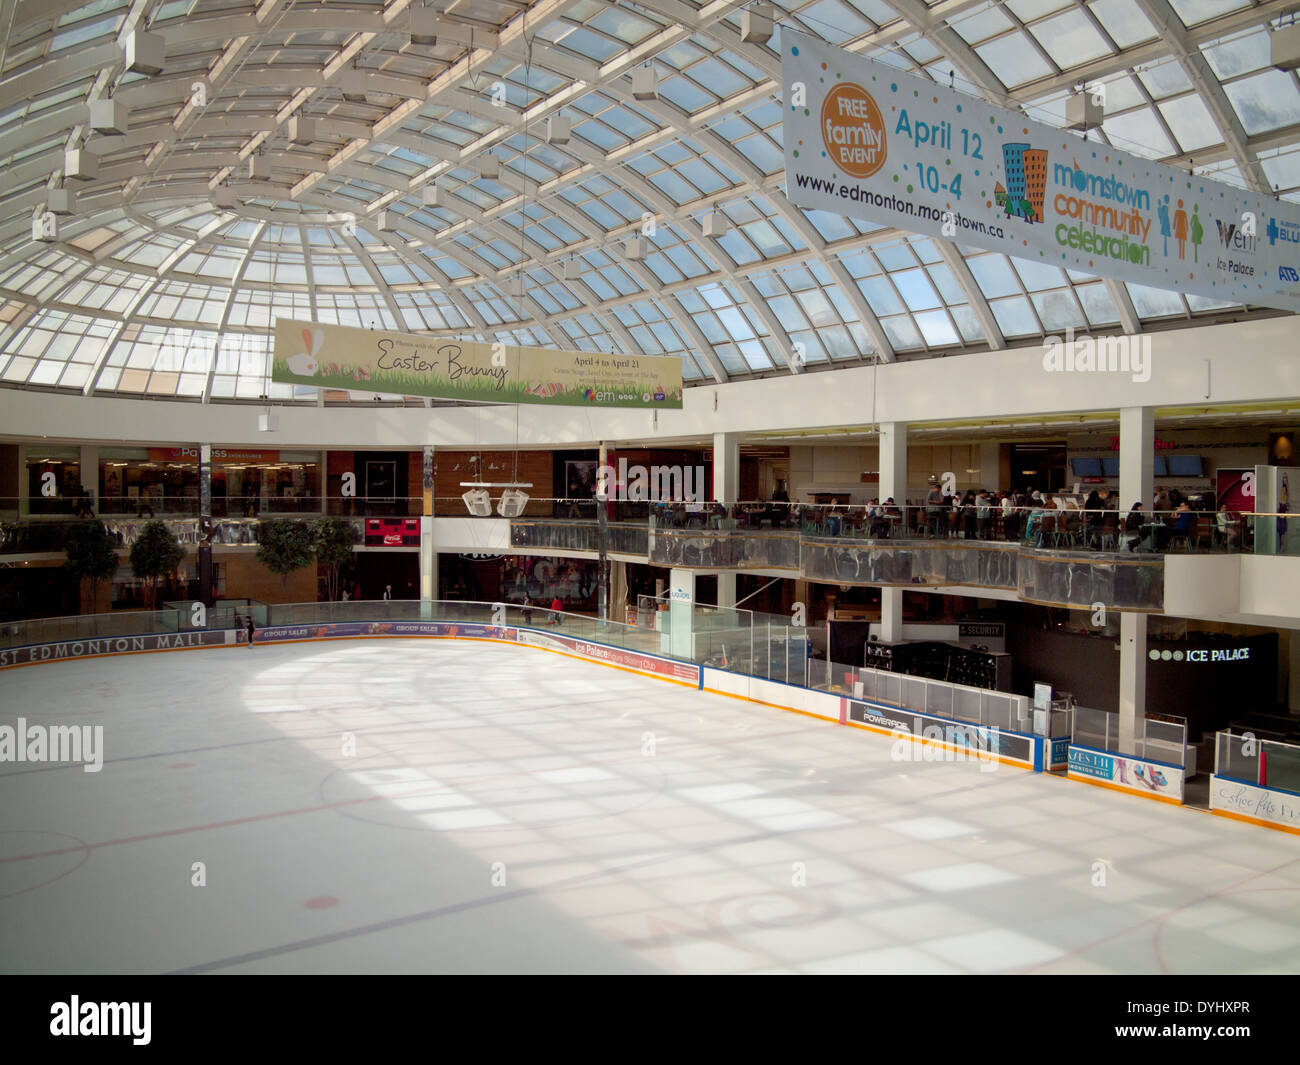 Roller skating rink jakarta - A View Of The Ice Palace Skating Rink At West Edmonton Mall In Edmonton Alberta